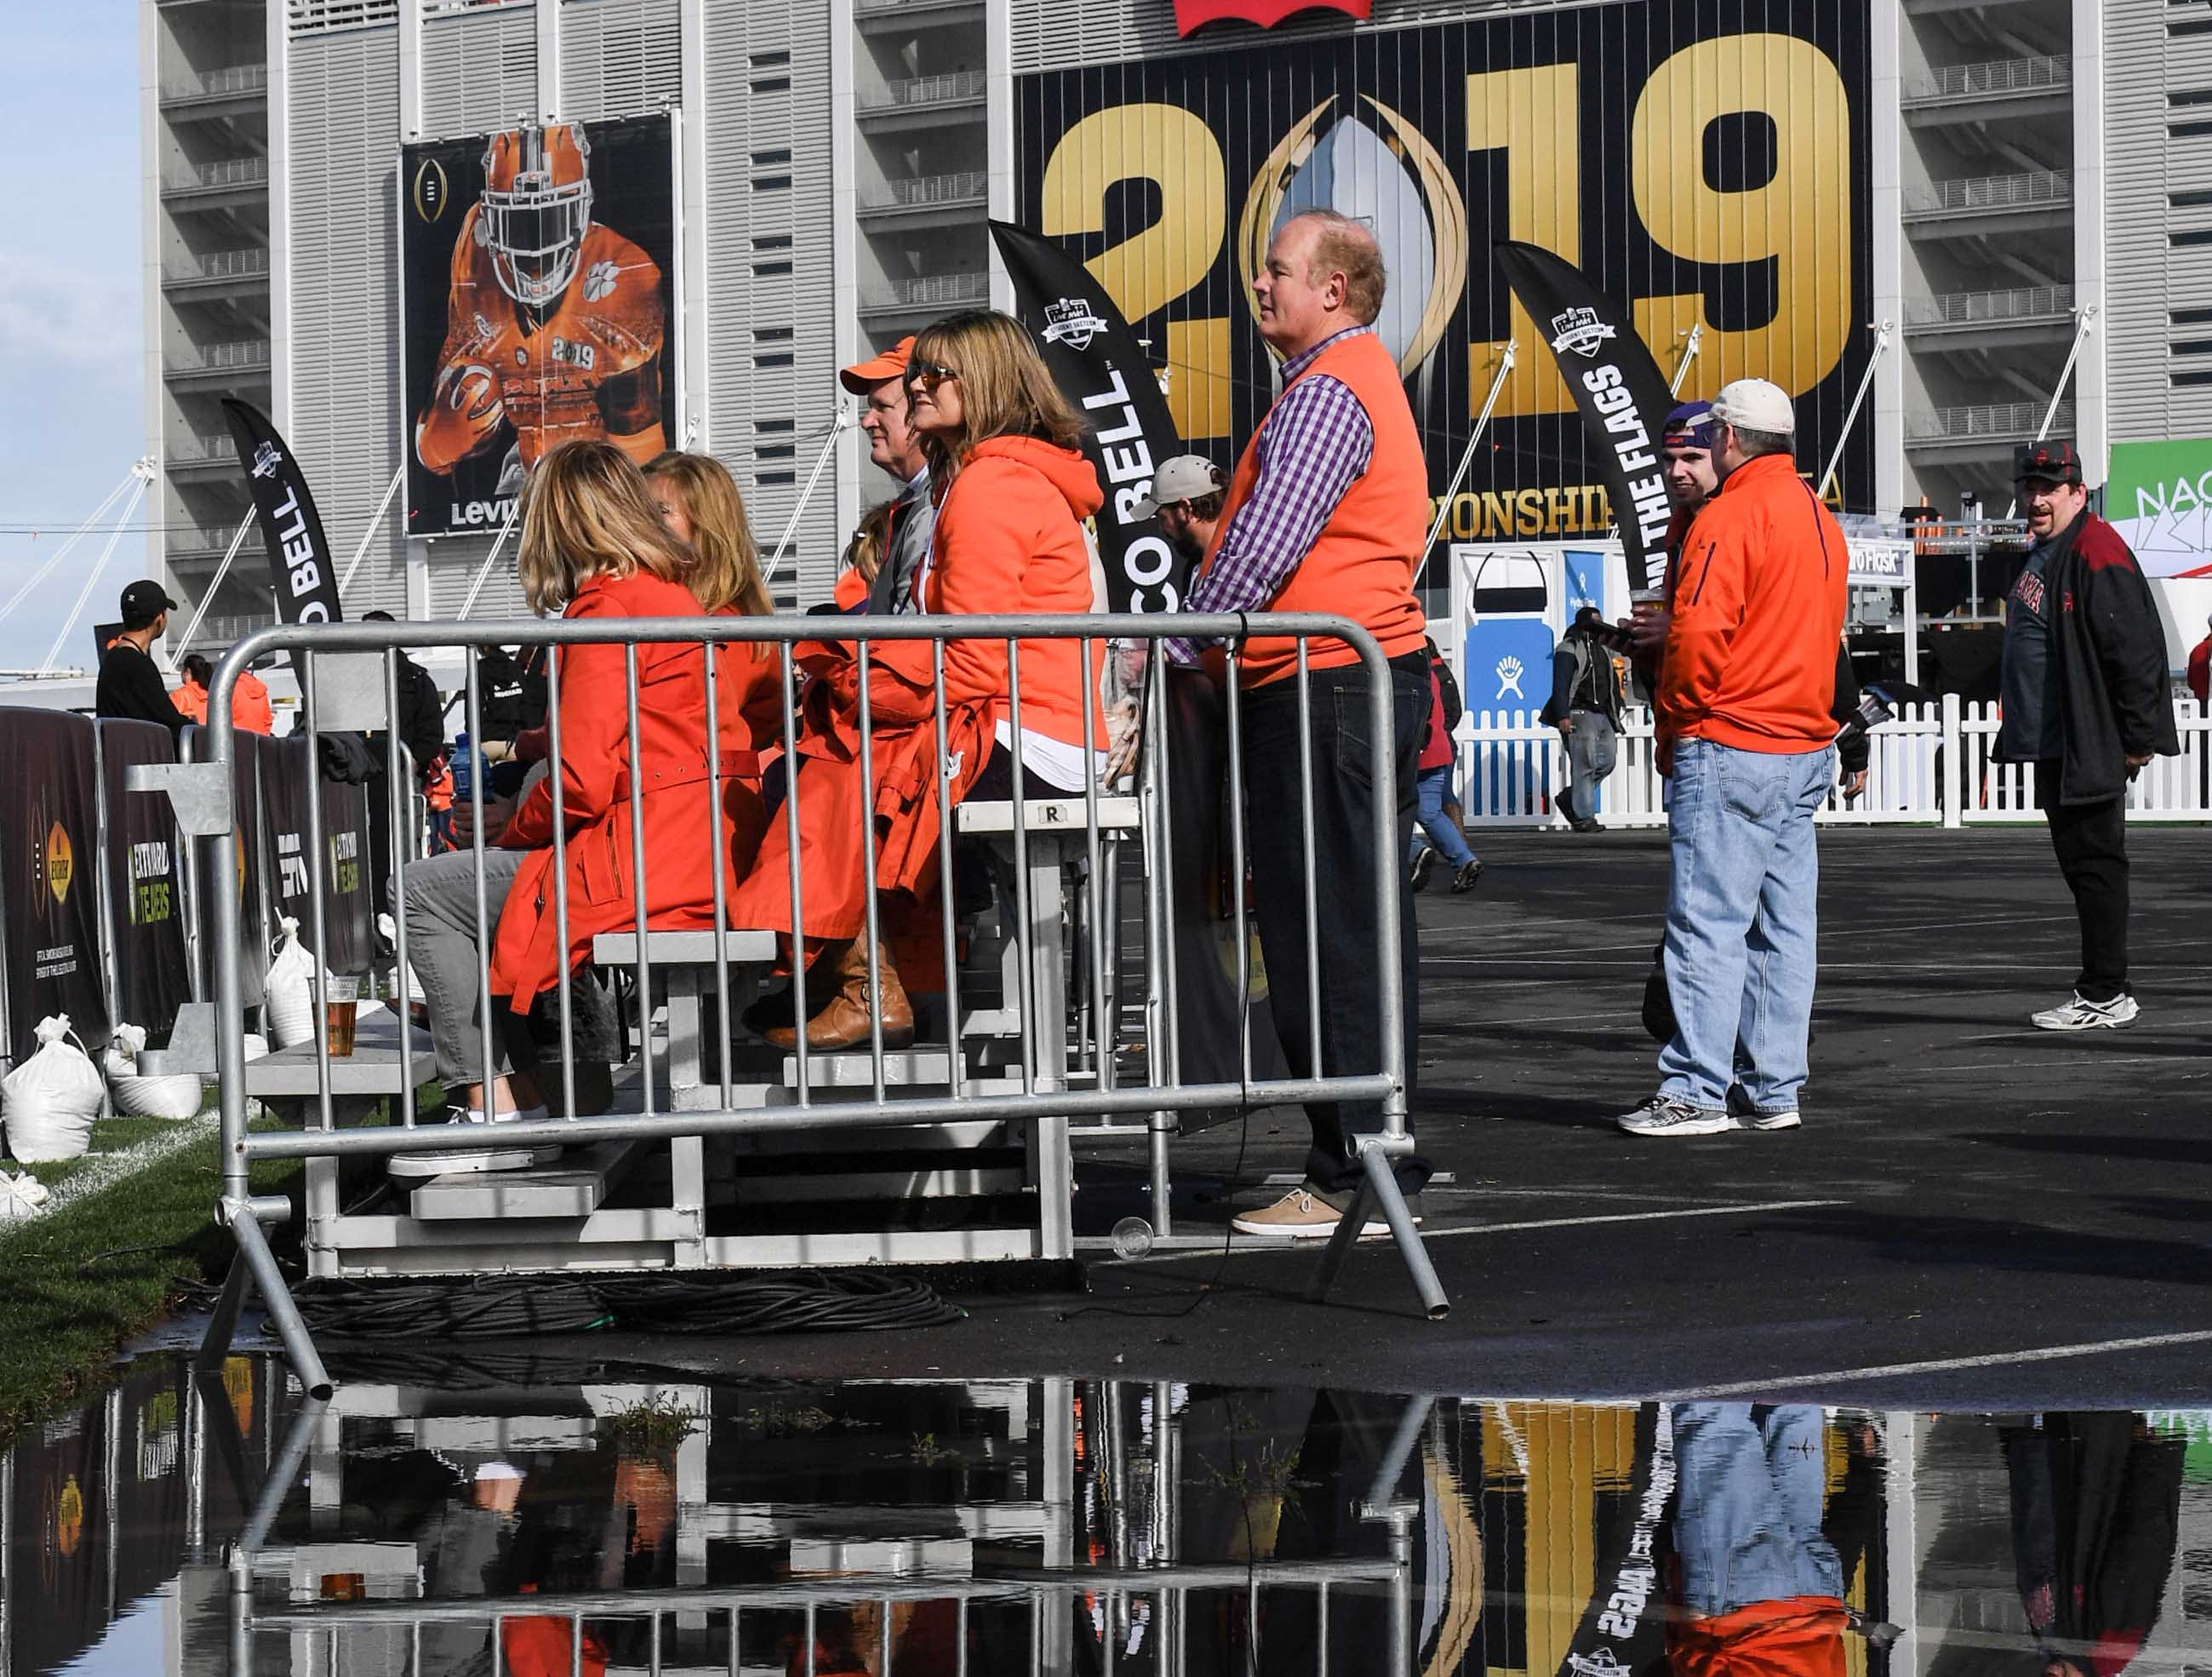 Clemson fans stand near a puddle of water from recent rain, participating in the College Football Championship Playoff Tailgate outside Levi's Stadium in Santa Clara, California Monday, January 7, 2019.